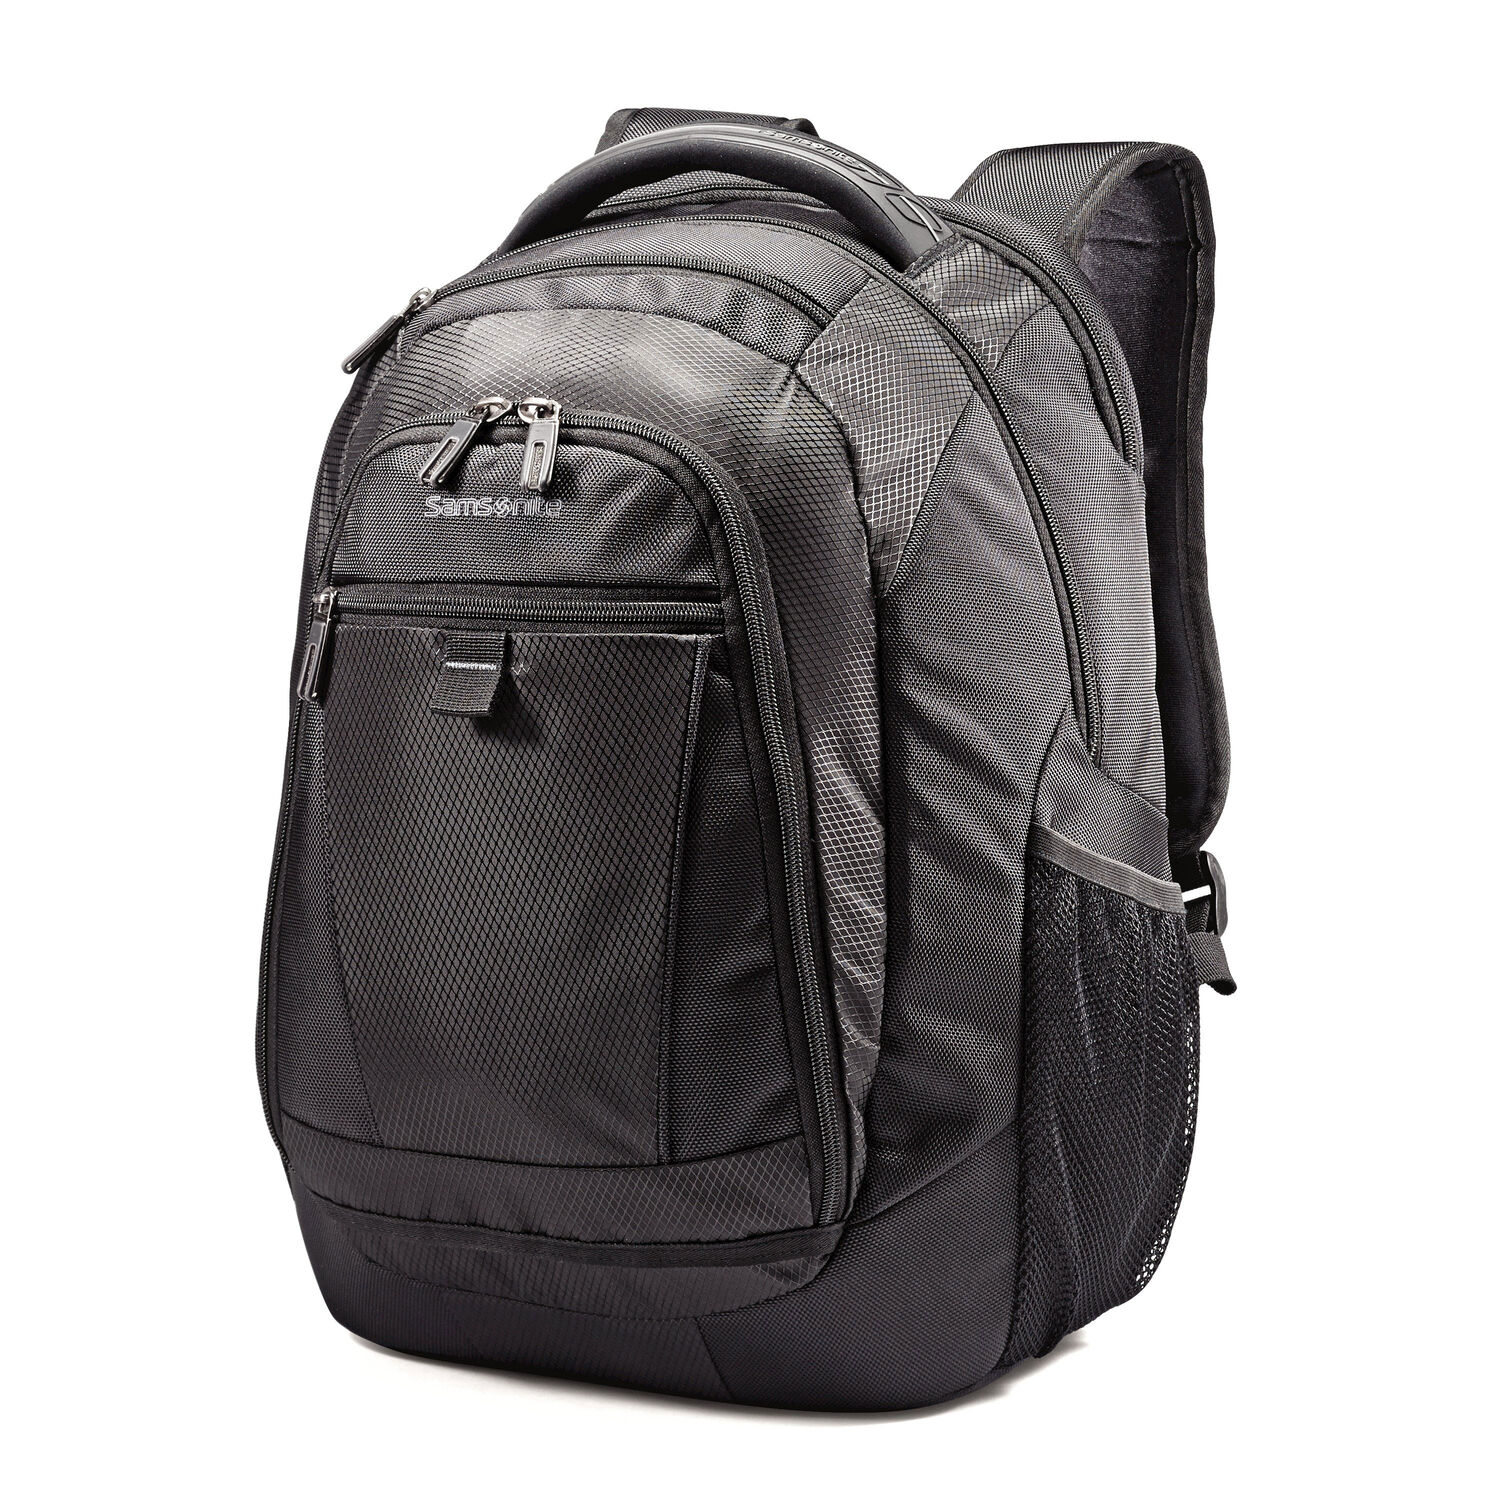 Samsonite Tectonic 2 Medium Laptop Backpacks Samsonite